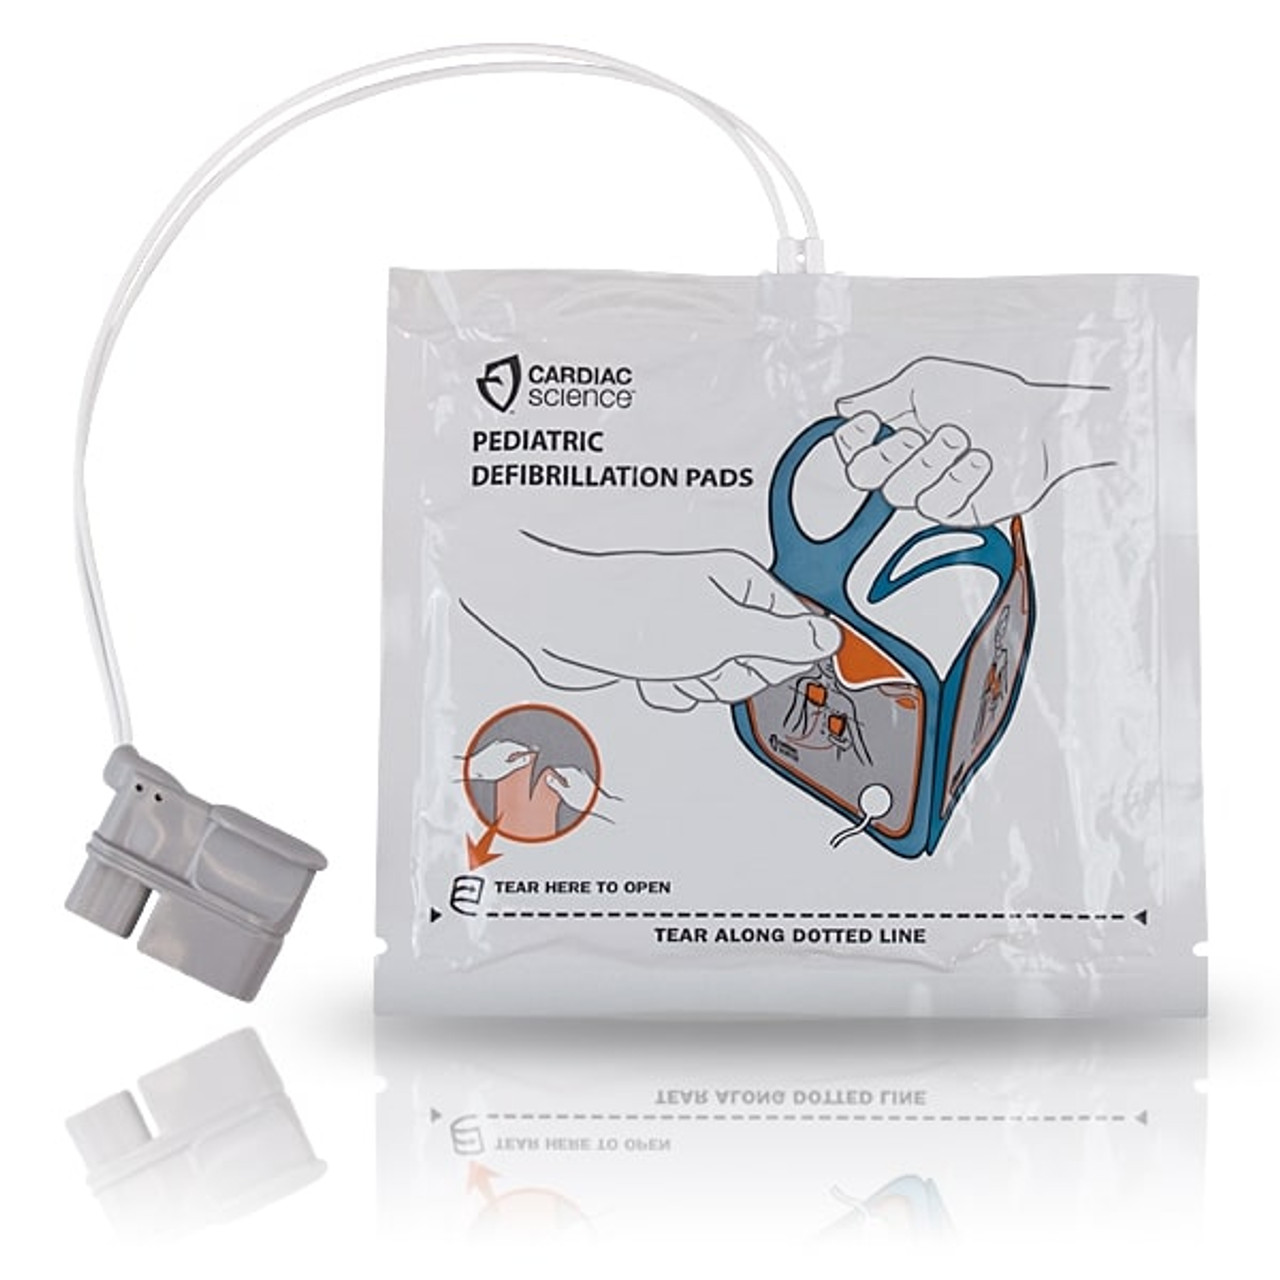 Cardiac Science PED Defib Pads for G5 AEDs